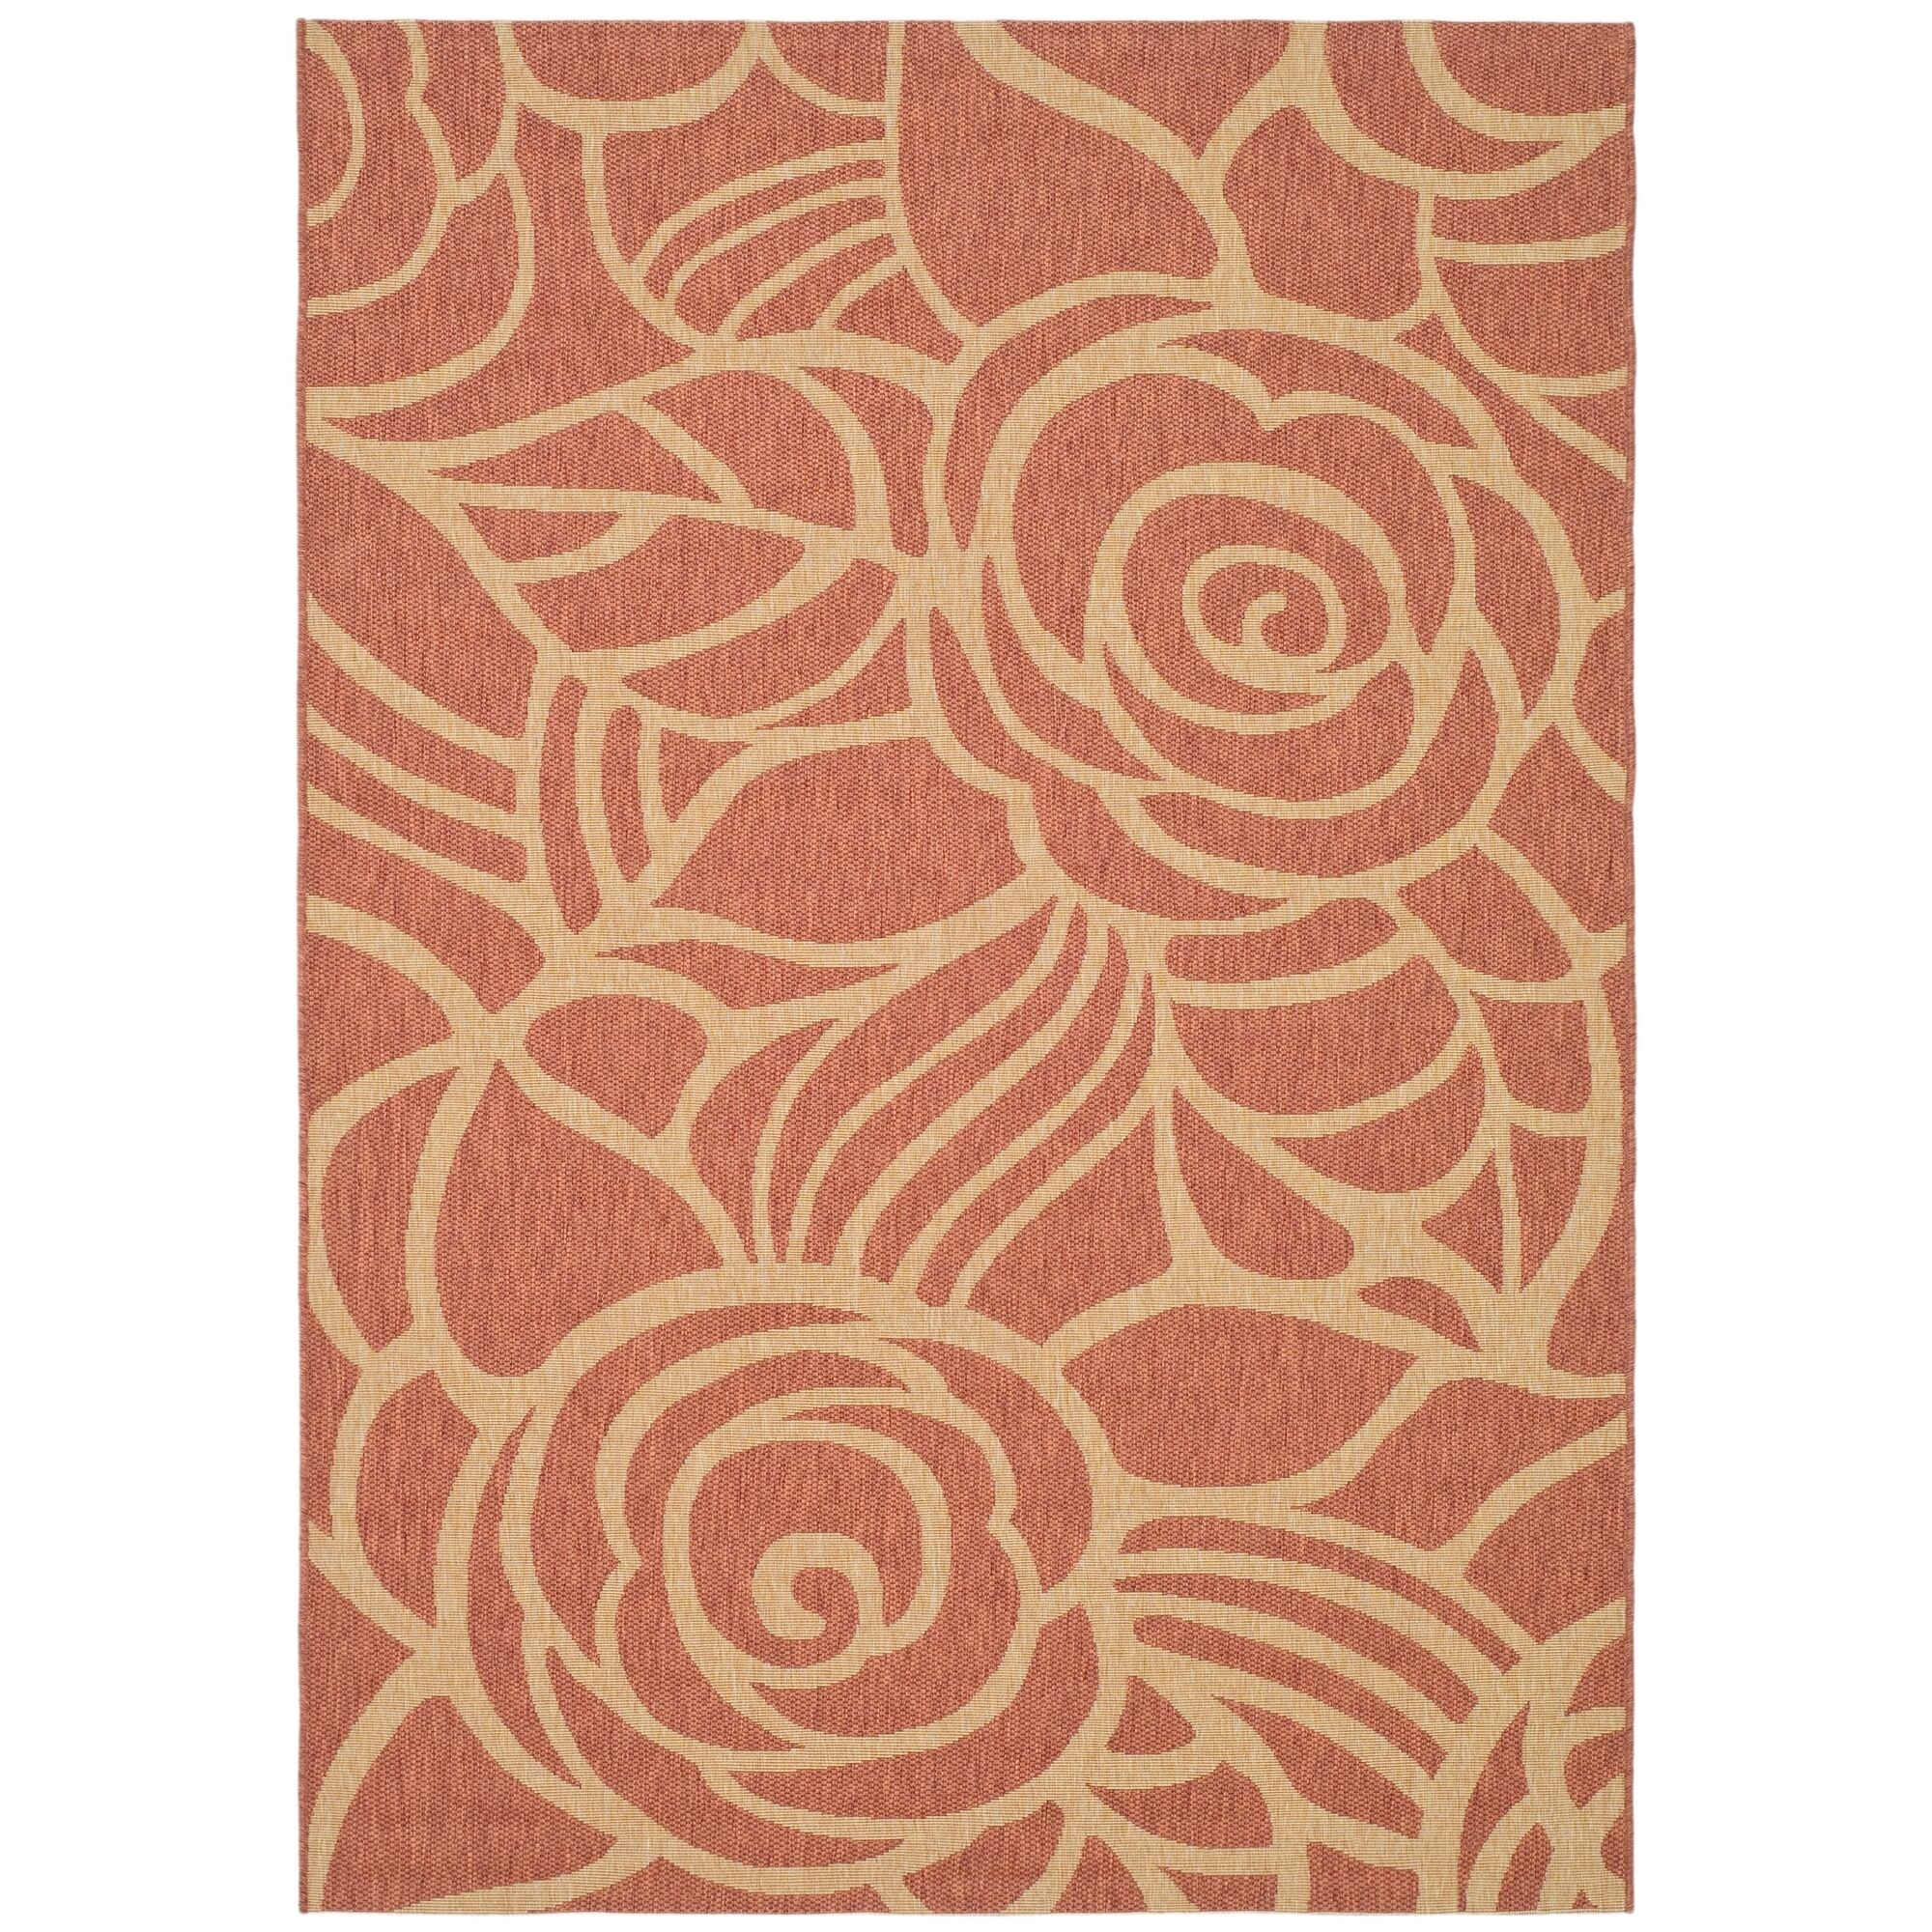 Laurel Rust/Sand Floral Outdoor Rug Rug Size: Rectangle 6'7